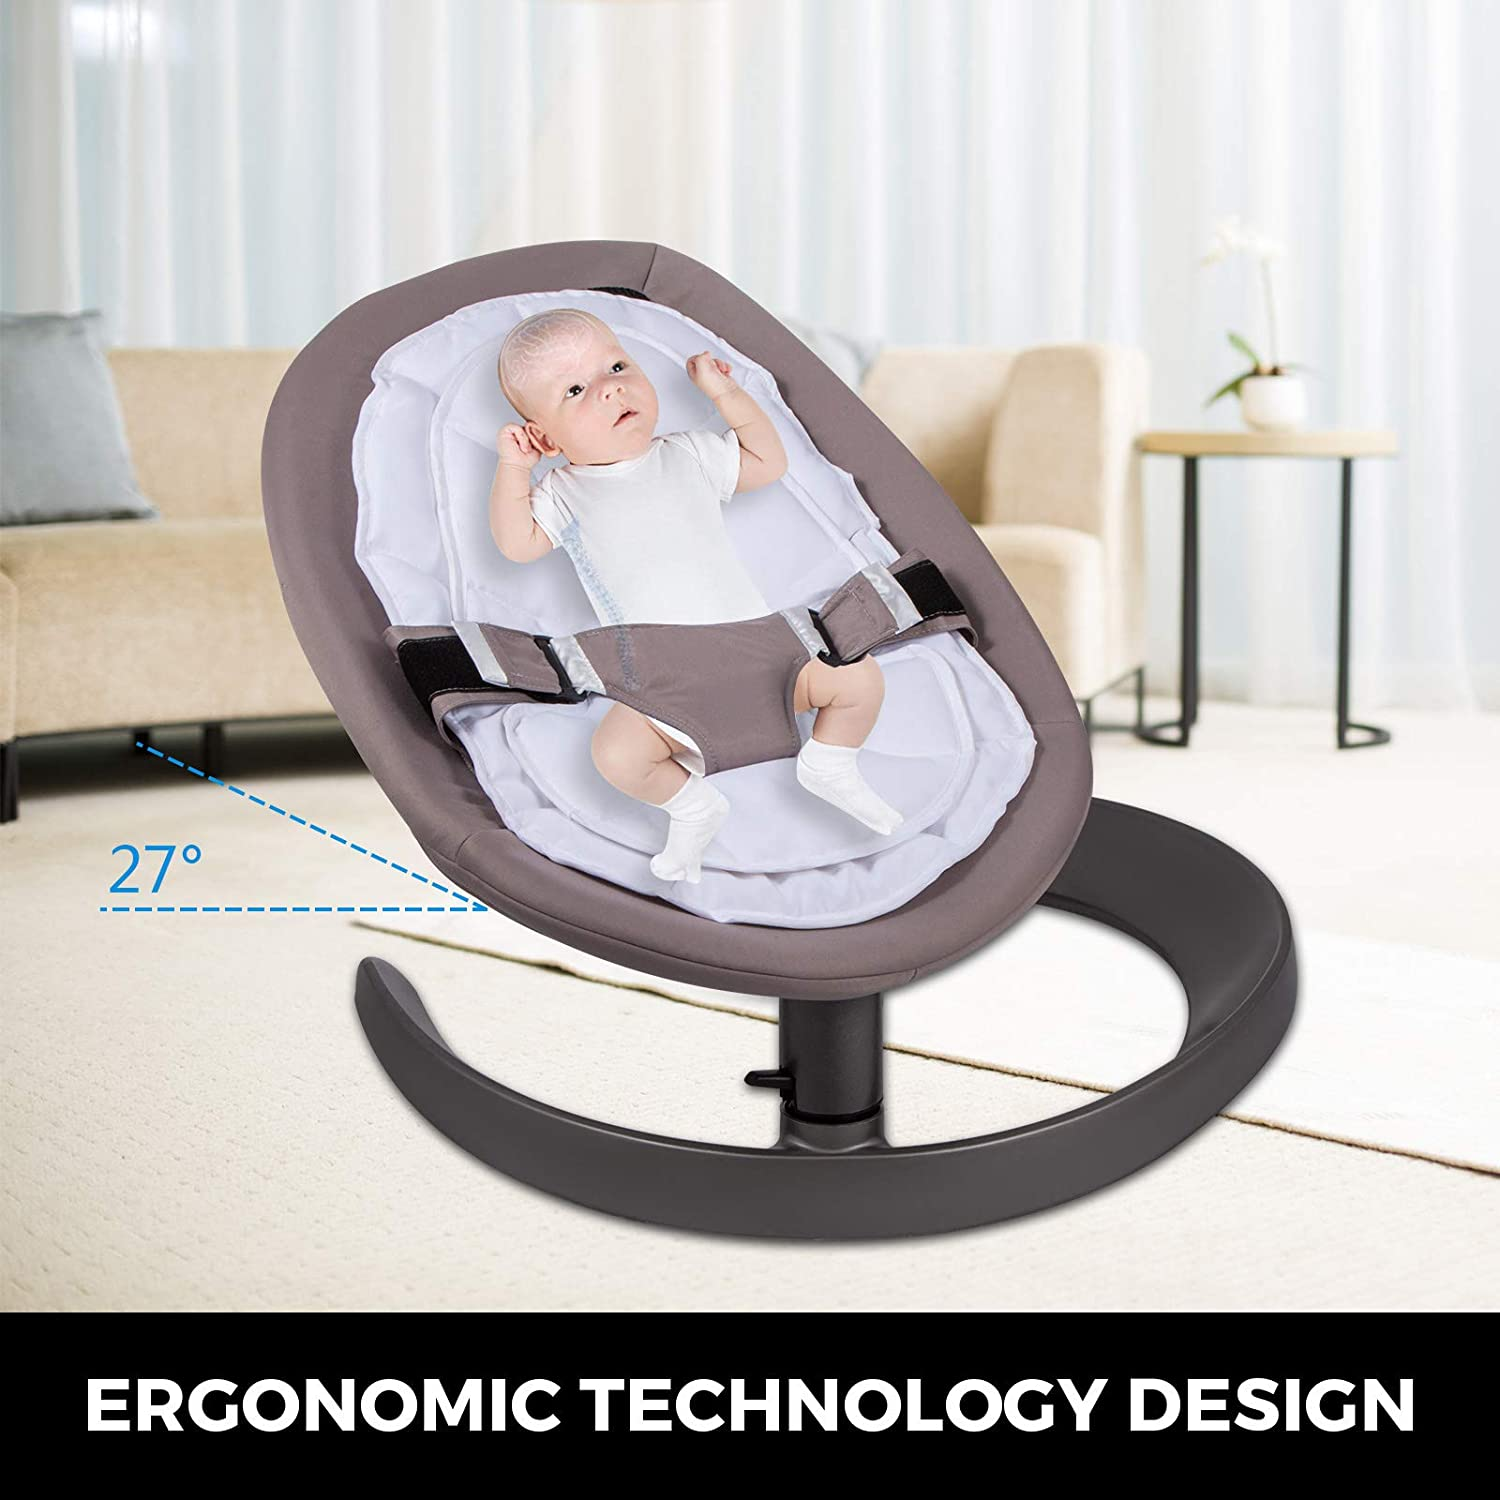 Silver Grey Happybuy Baby Swing Chair for Newborn Toddler Kids from Ages 0 to 5 Bouncer Infant Comfort Swing Chair Soft Toddler Cradle Seat Baby Rocker Plush Rocking